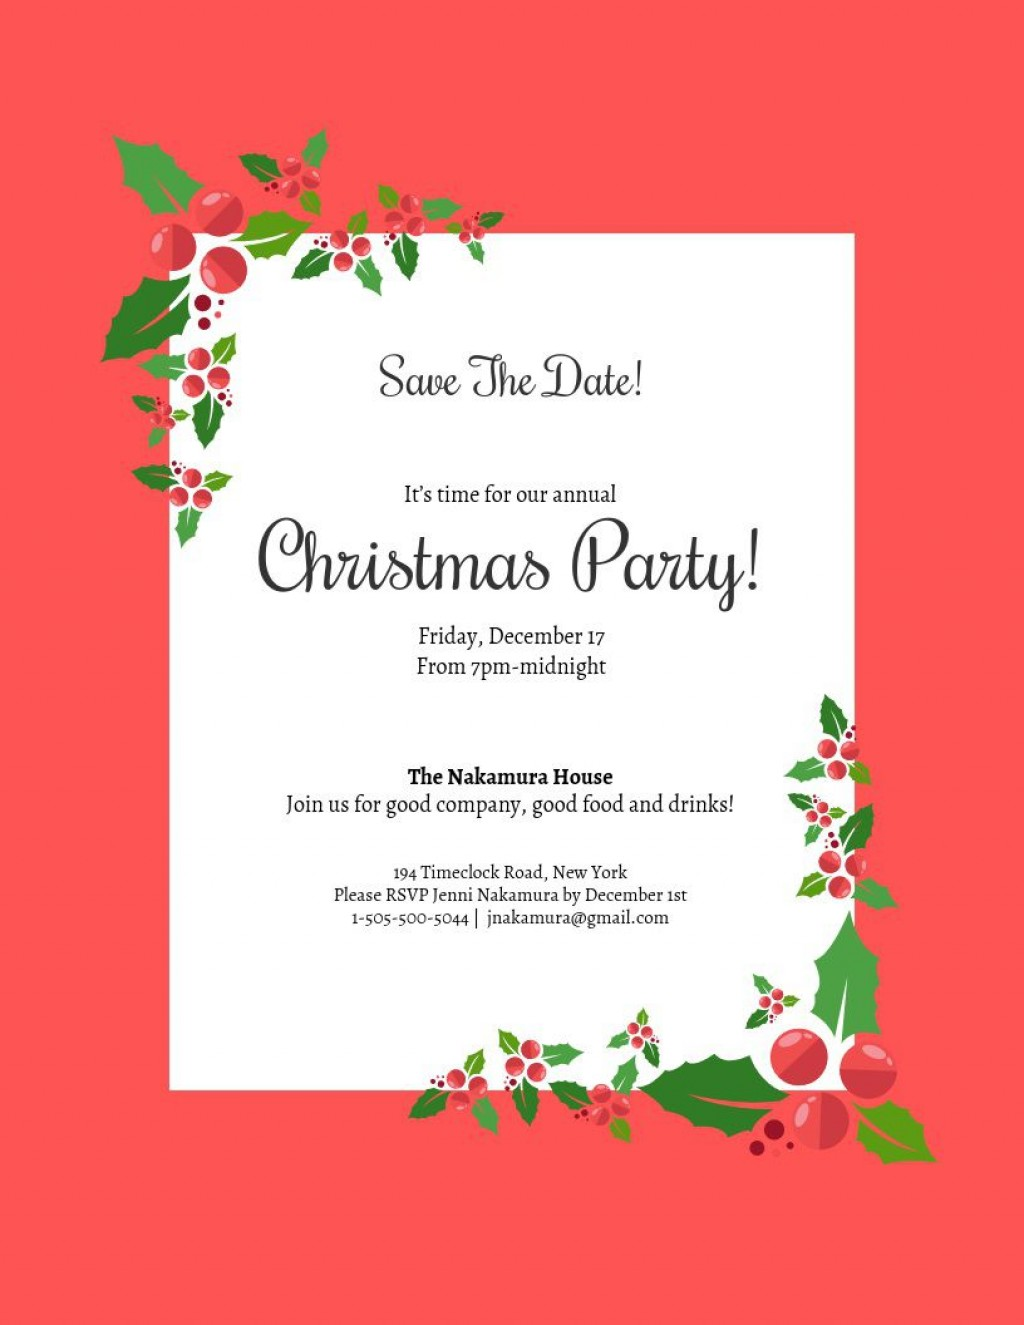 000 Frightening Christma Party Invitation Template Idea  Funny Free Download Word CardLarge